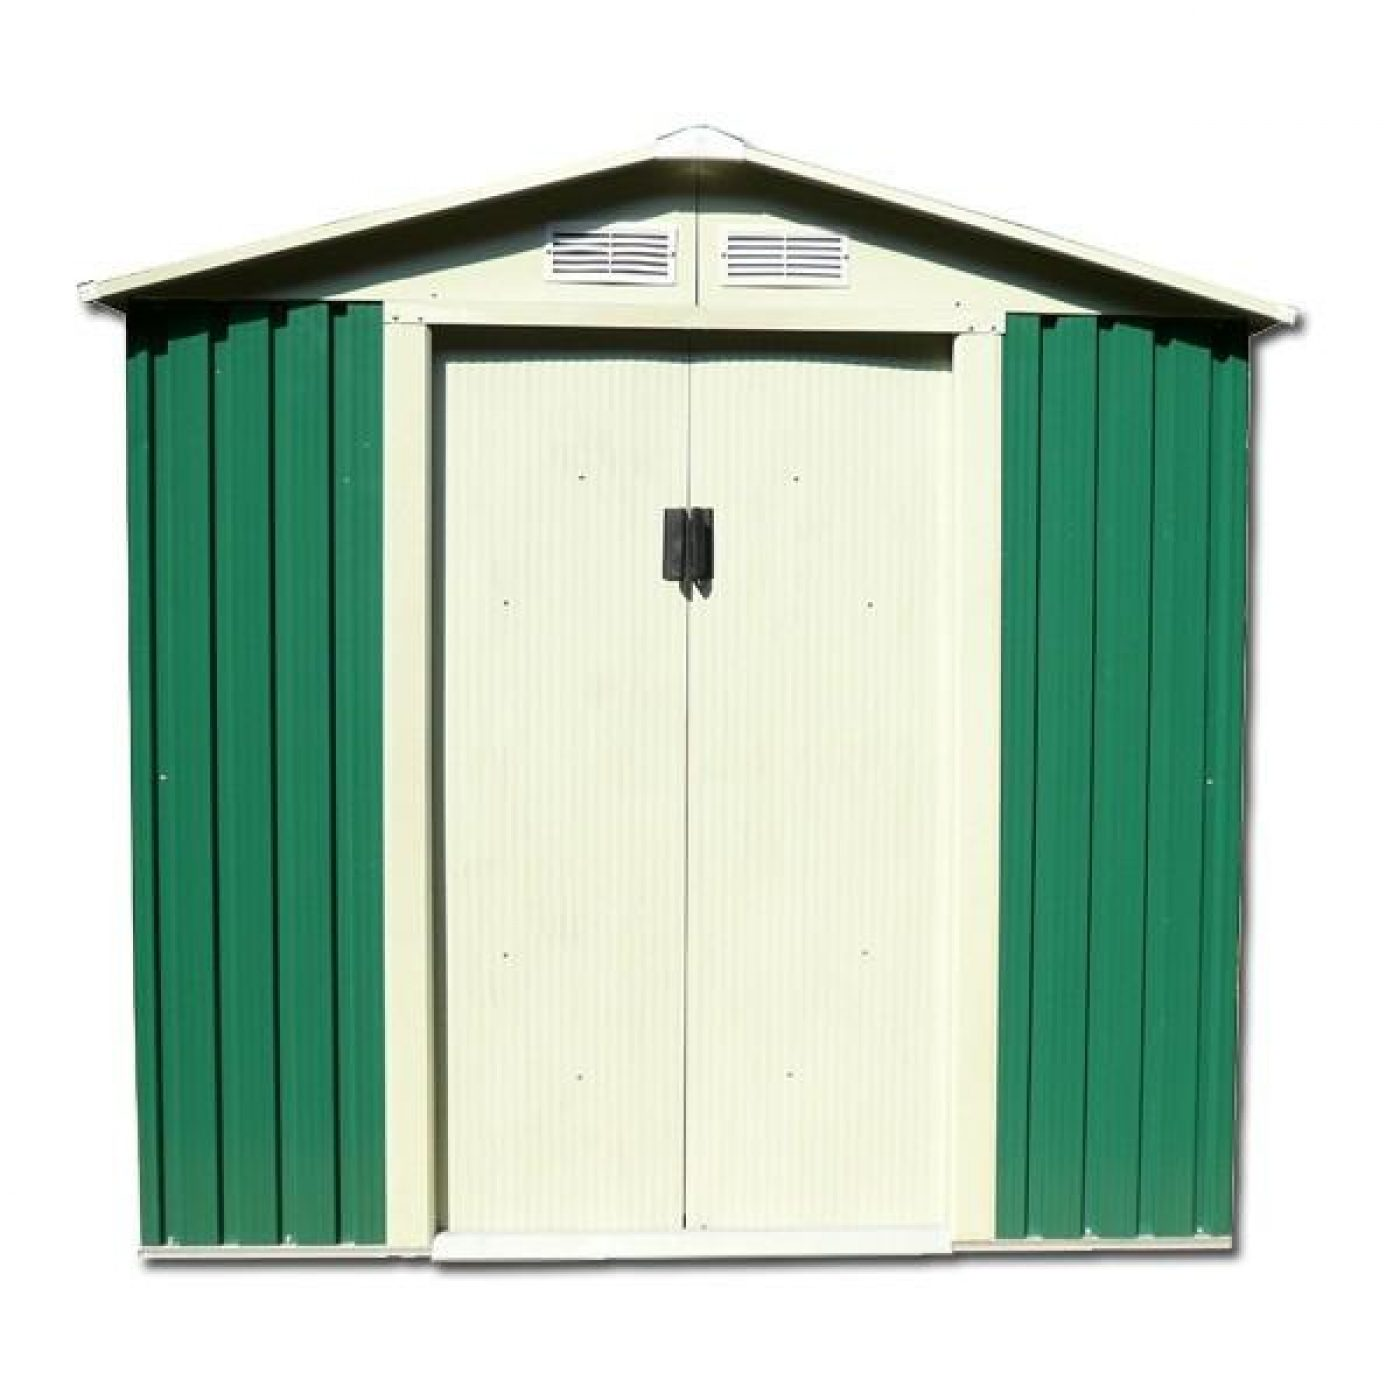 Petit hangar m tallique avec porte double battant 121 x - Porte metallique double battant ...